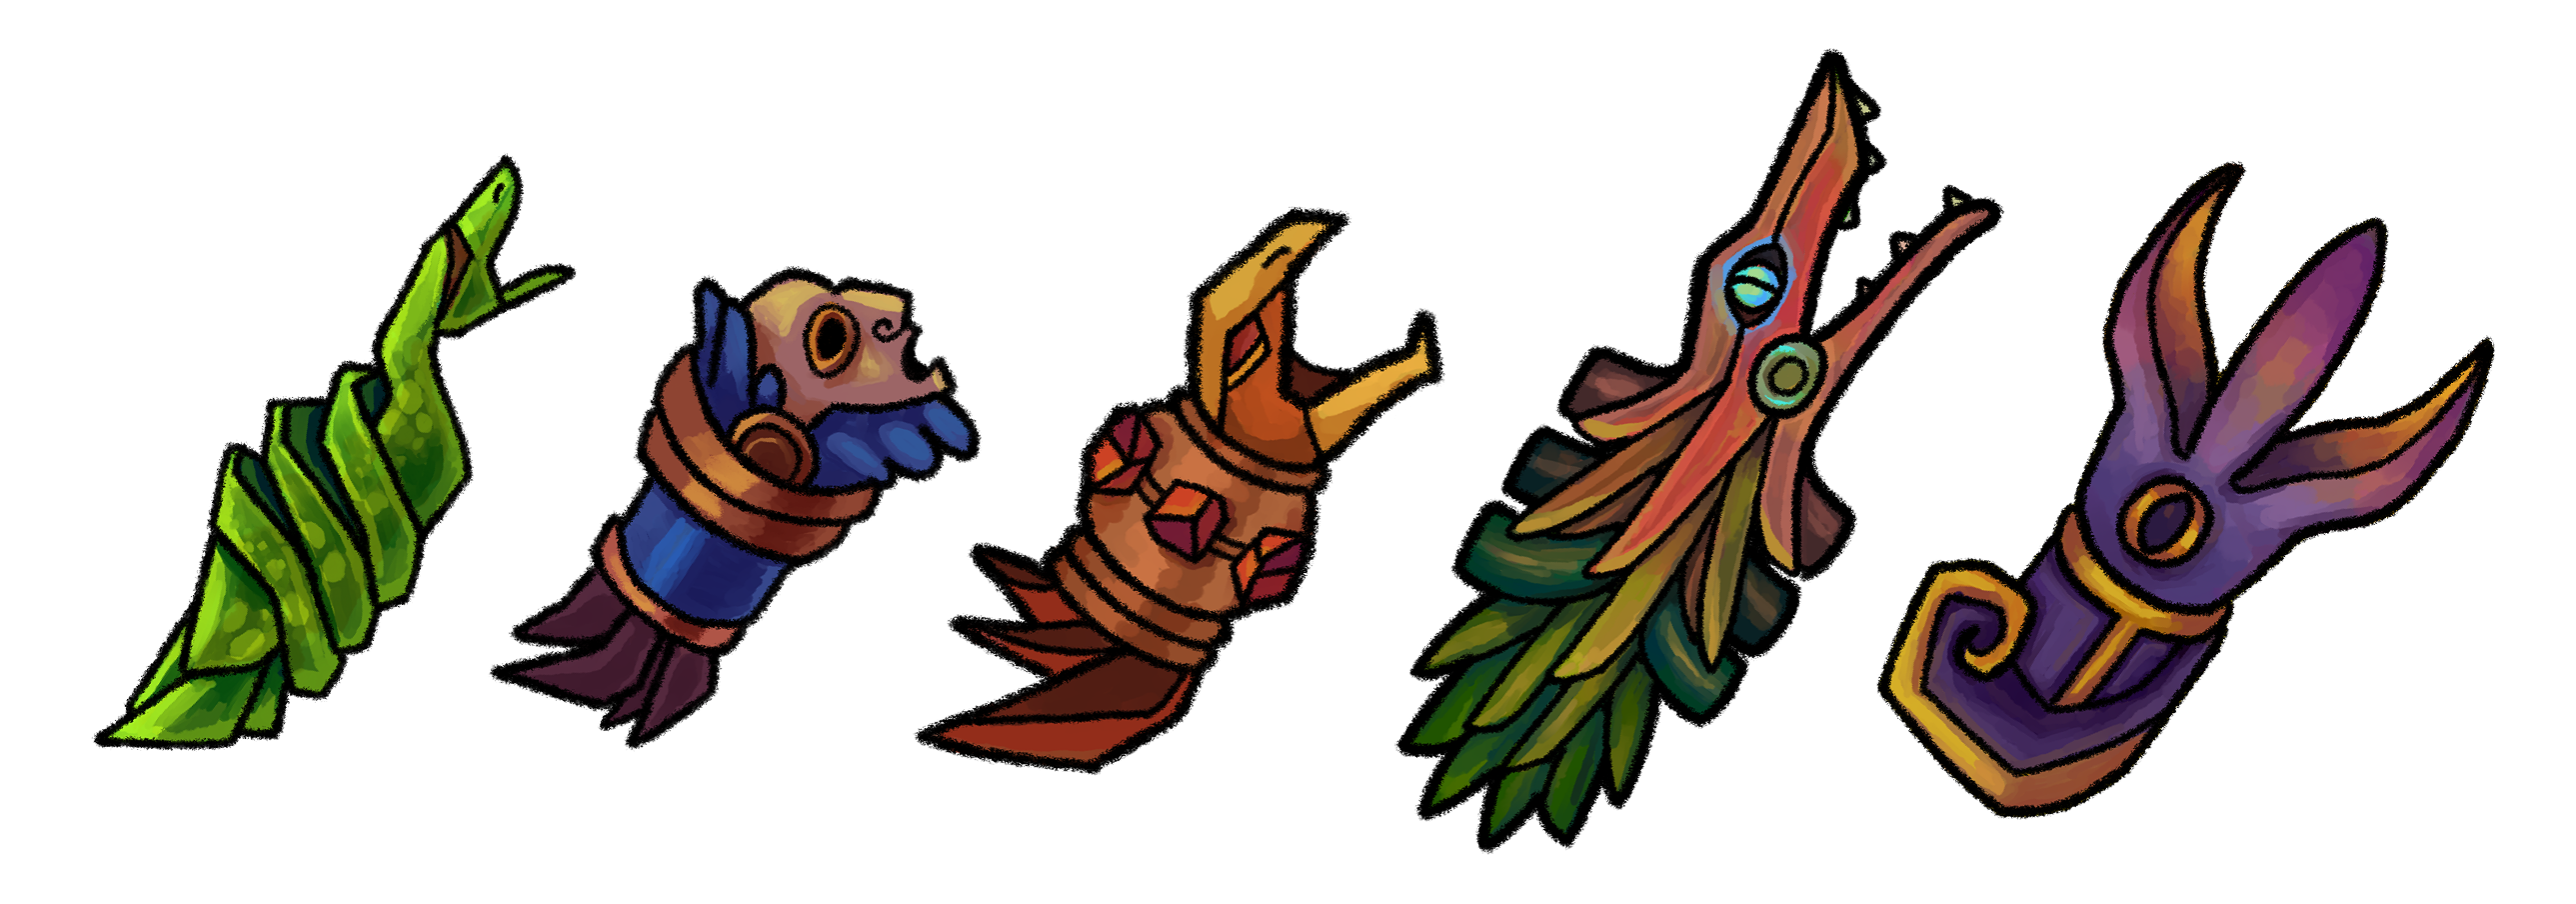 Elfscape weapons